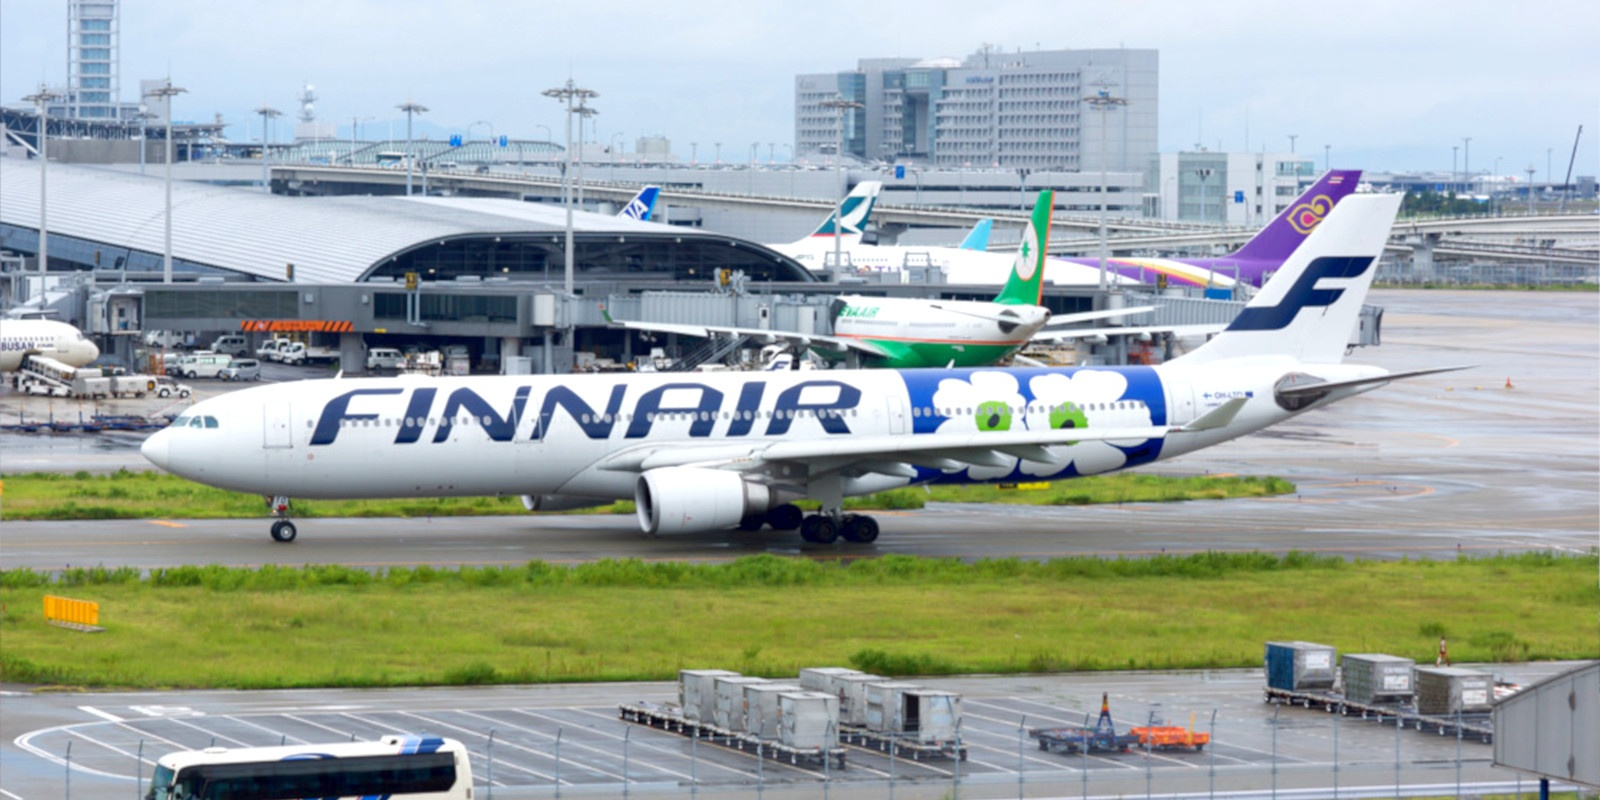 A Finnair airliner resting on the tarmac.